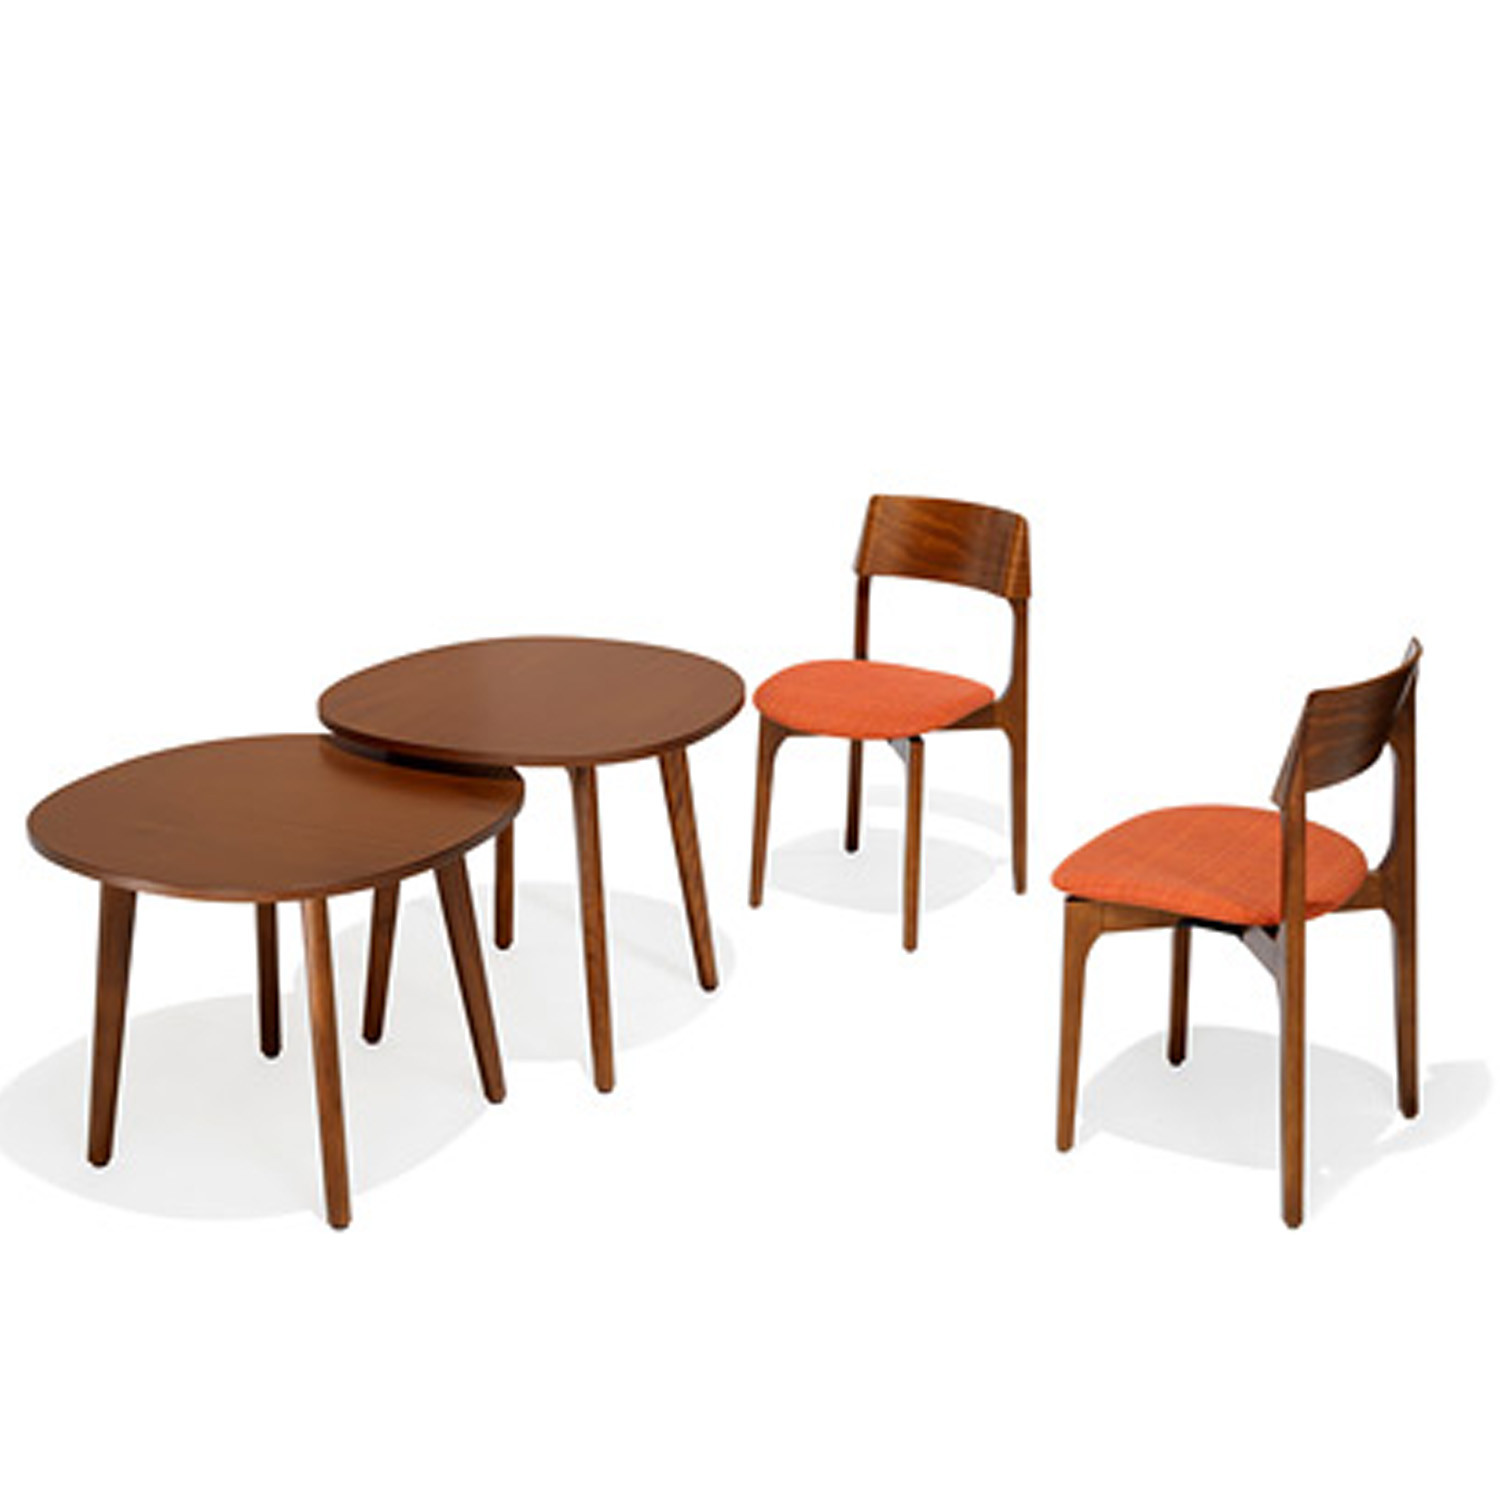 1010 Bina Upholstered Cafe Chairs